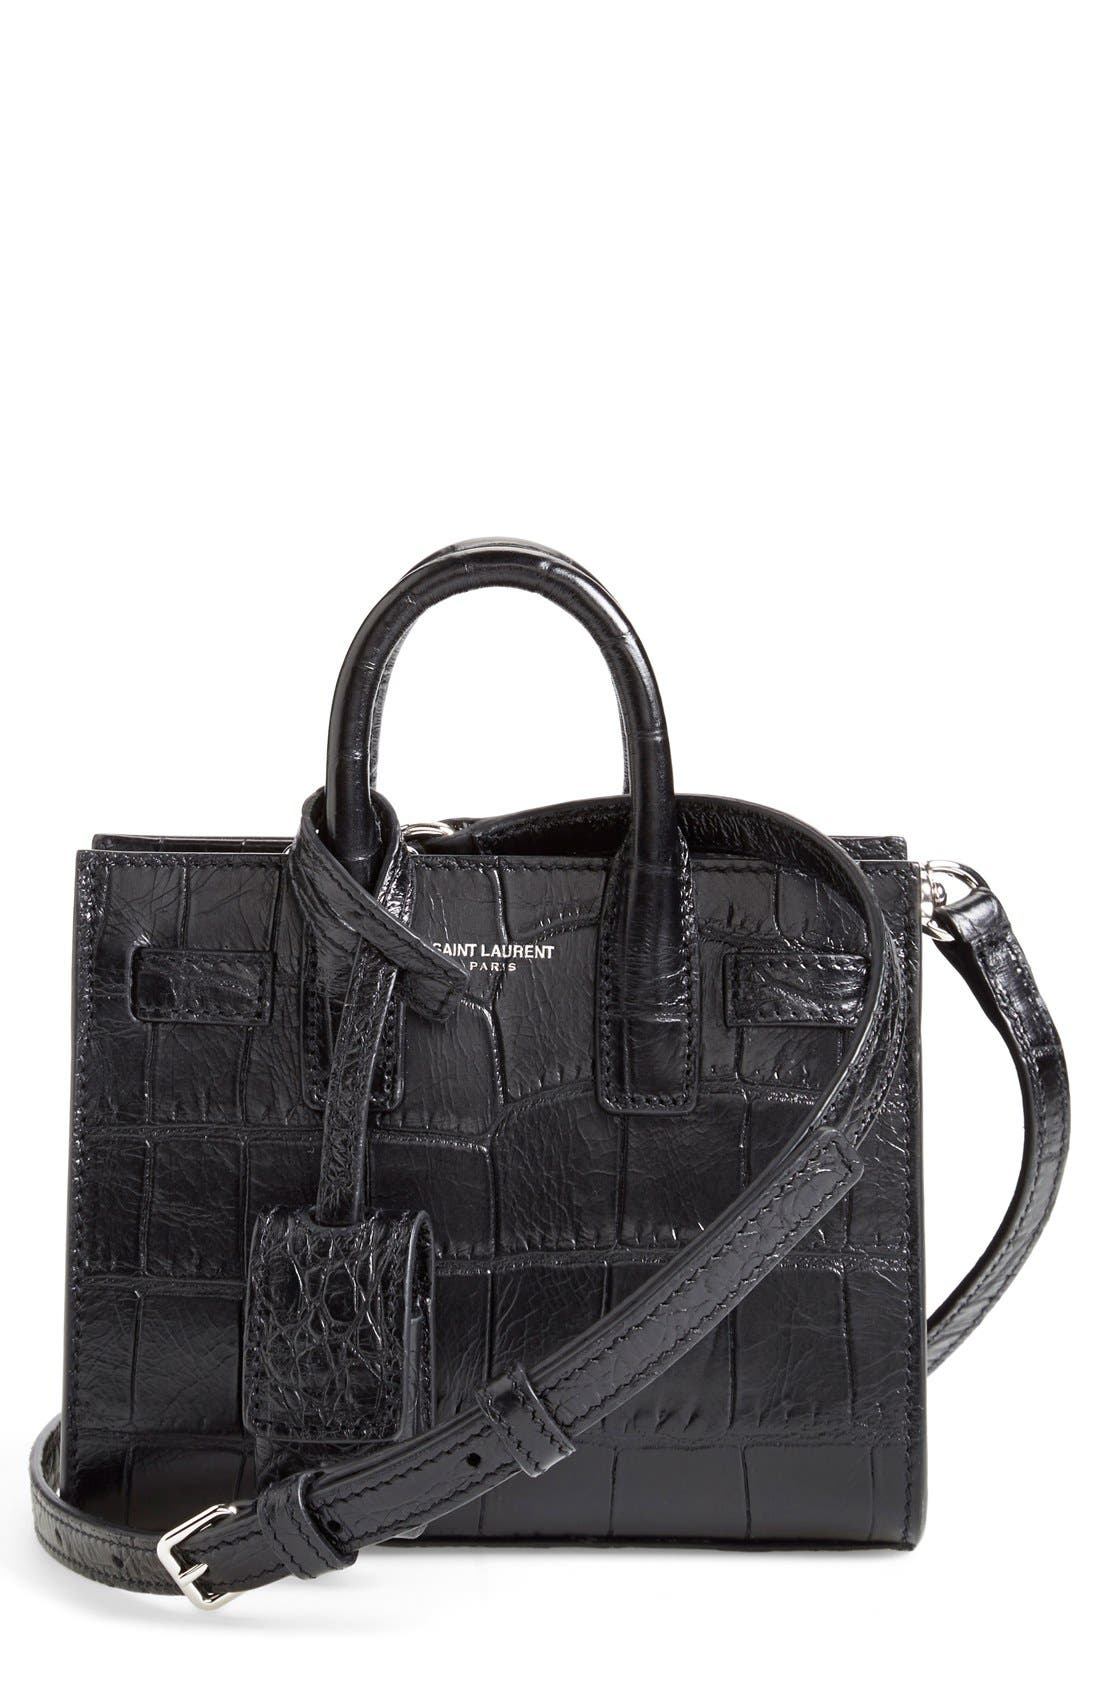 Main Image - Saint Laurent 'Toy Sac de Jour' Croc Embossed Calfskin Leather Tote (Extra Small)